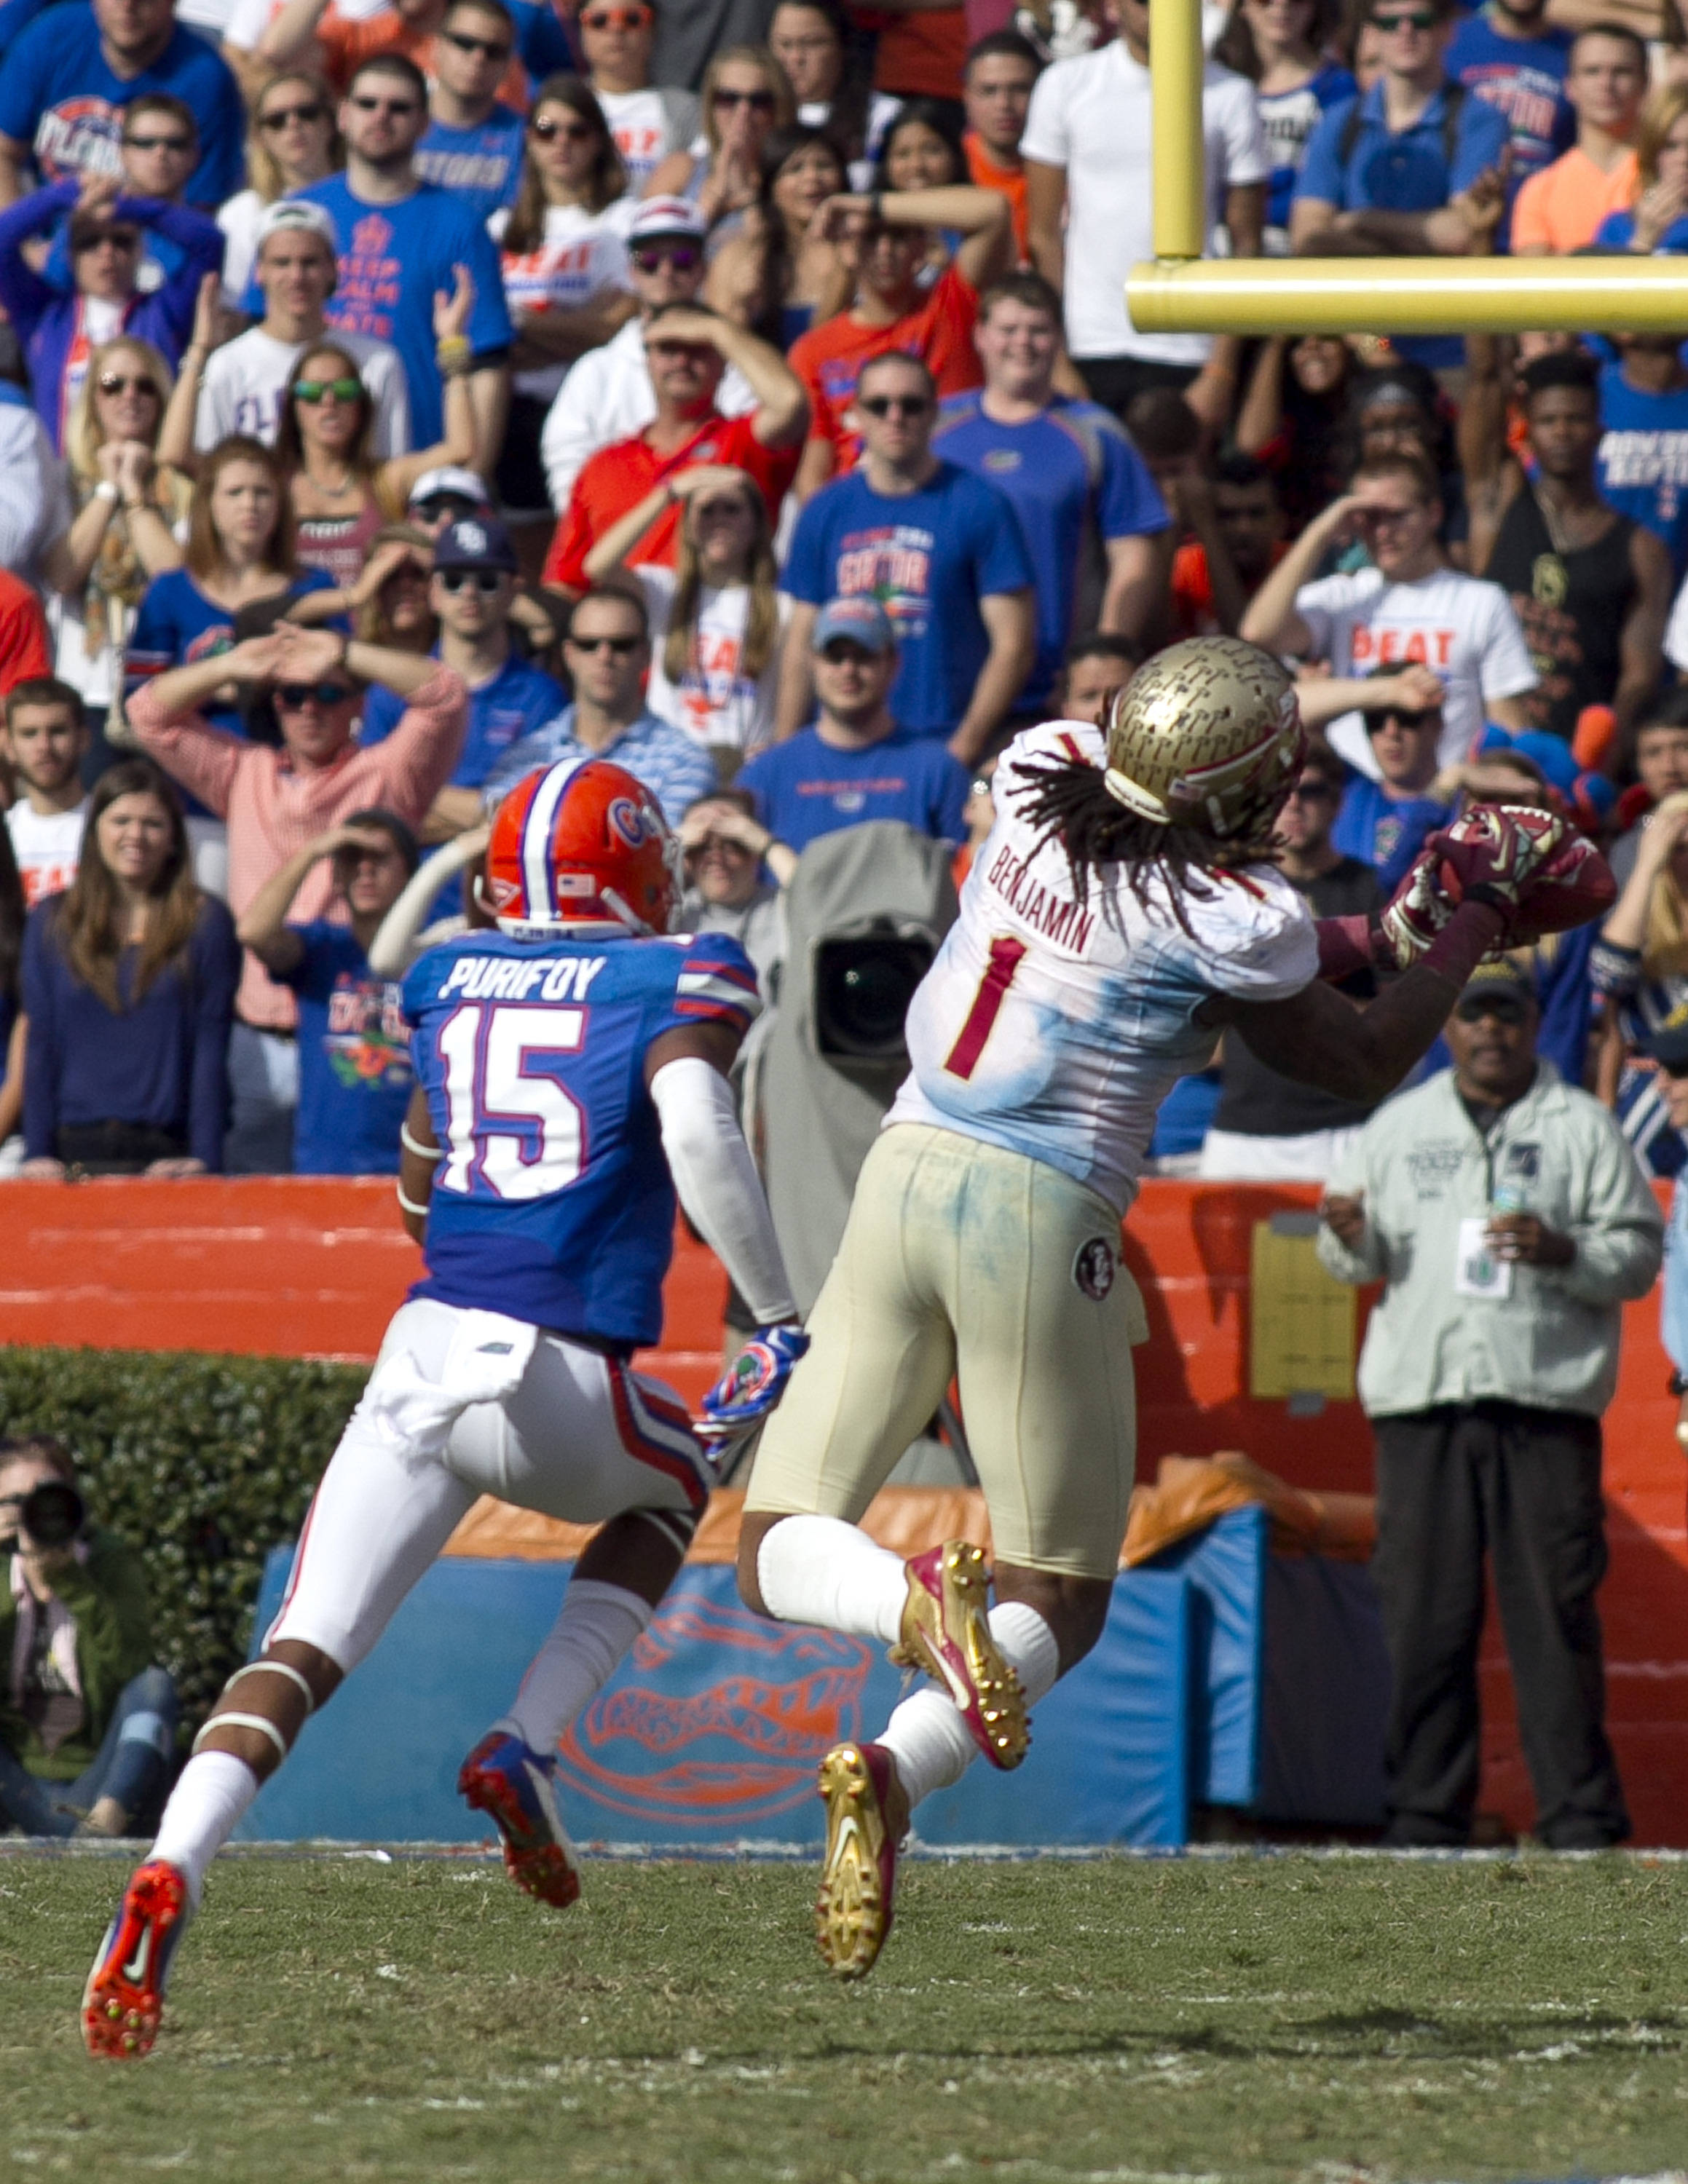 Kelvin Benjamin (1) reaching out for a long reception, FSU vs Florida, 11-30-13,  (Photo by Steve Musco)